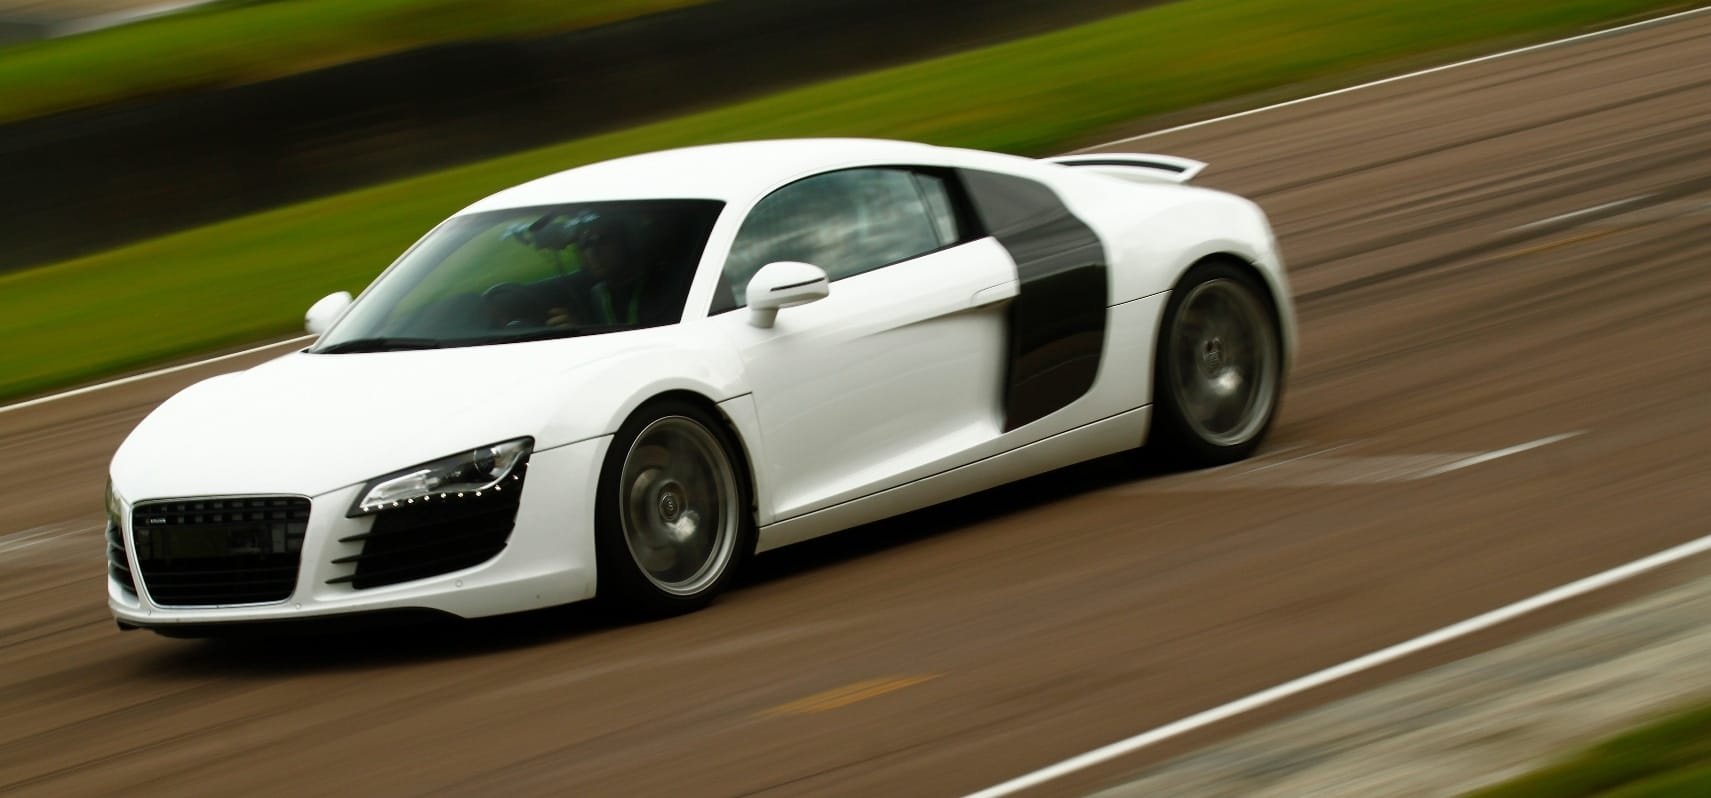 Iron Man Audi R8 6 Mile Driving Experience-5